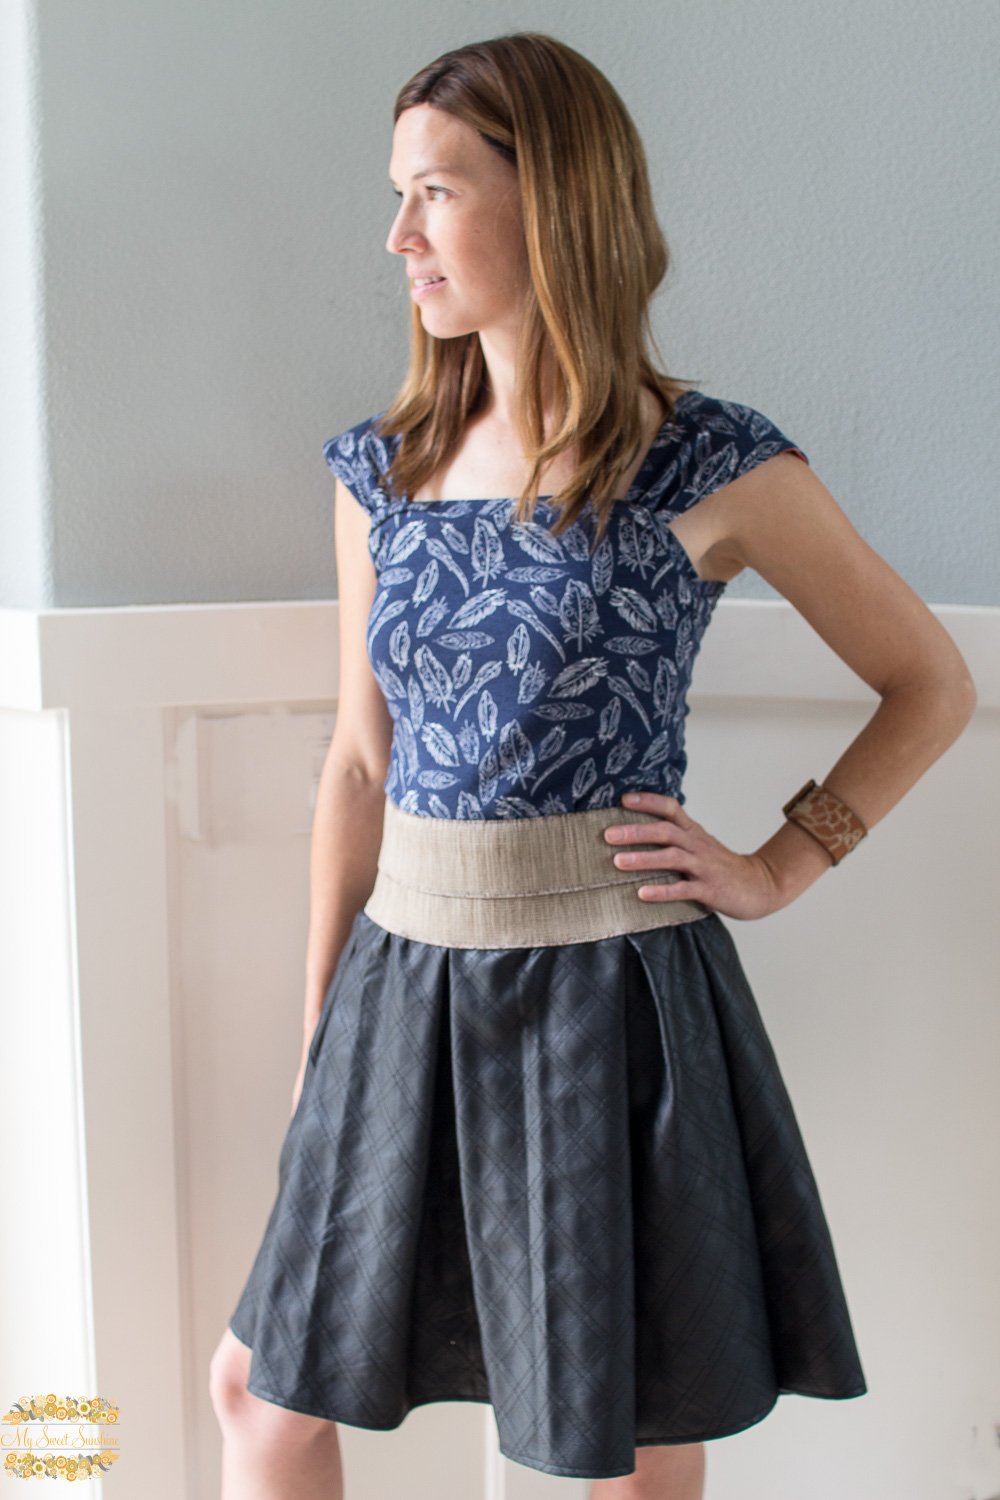 Introducing: Allie, Annie, and Quinn by Violette Field Threads- Pattern Revolution